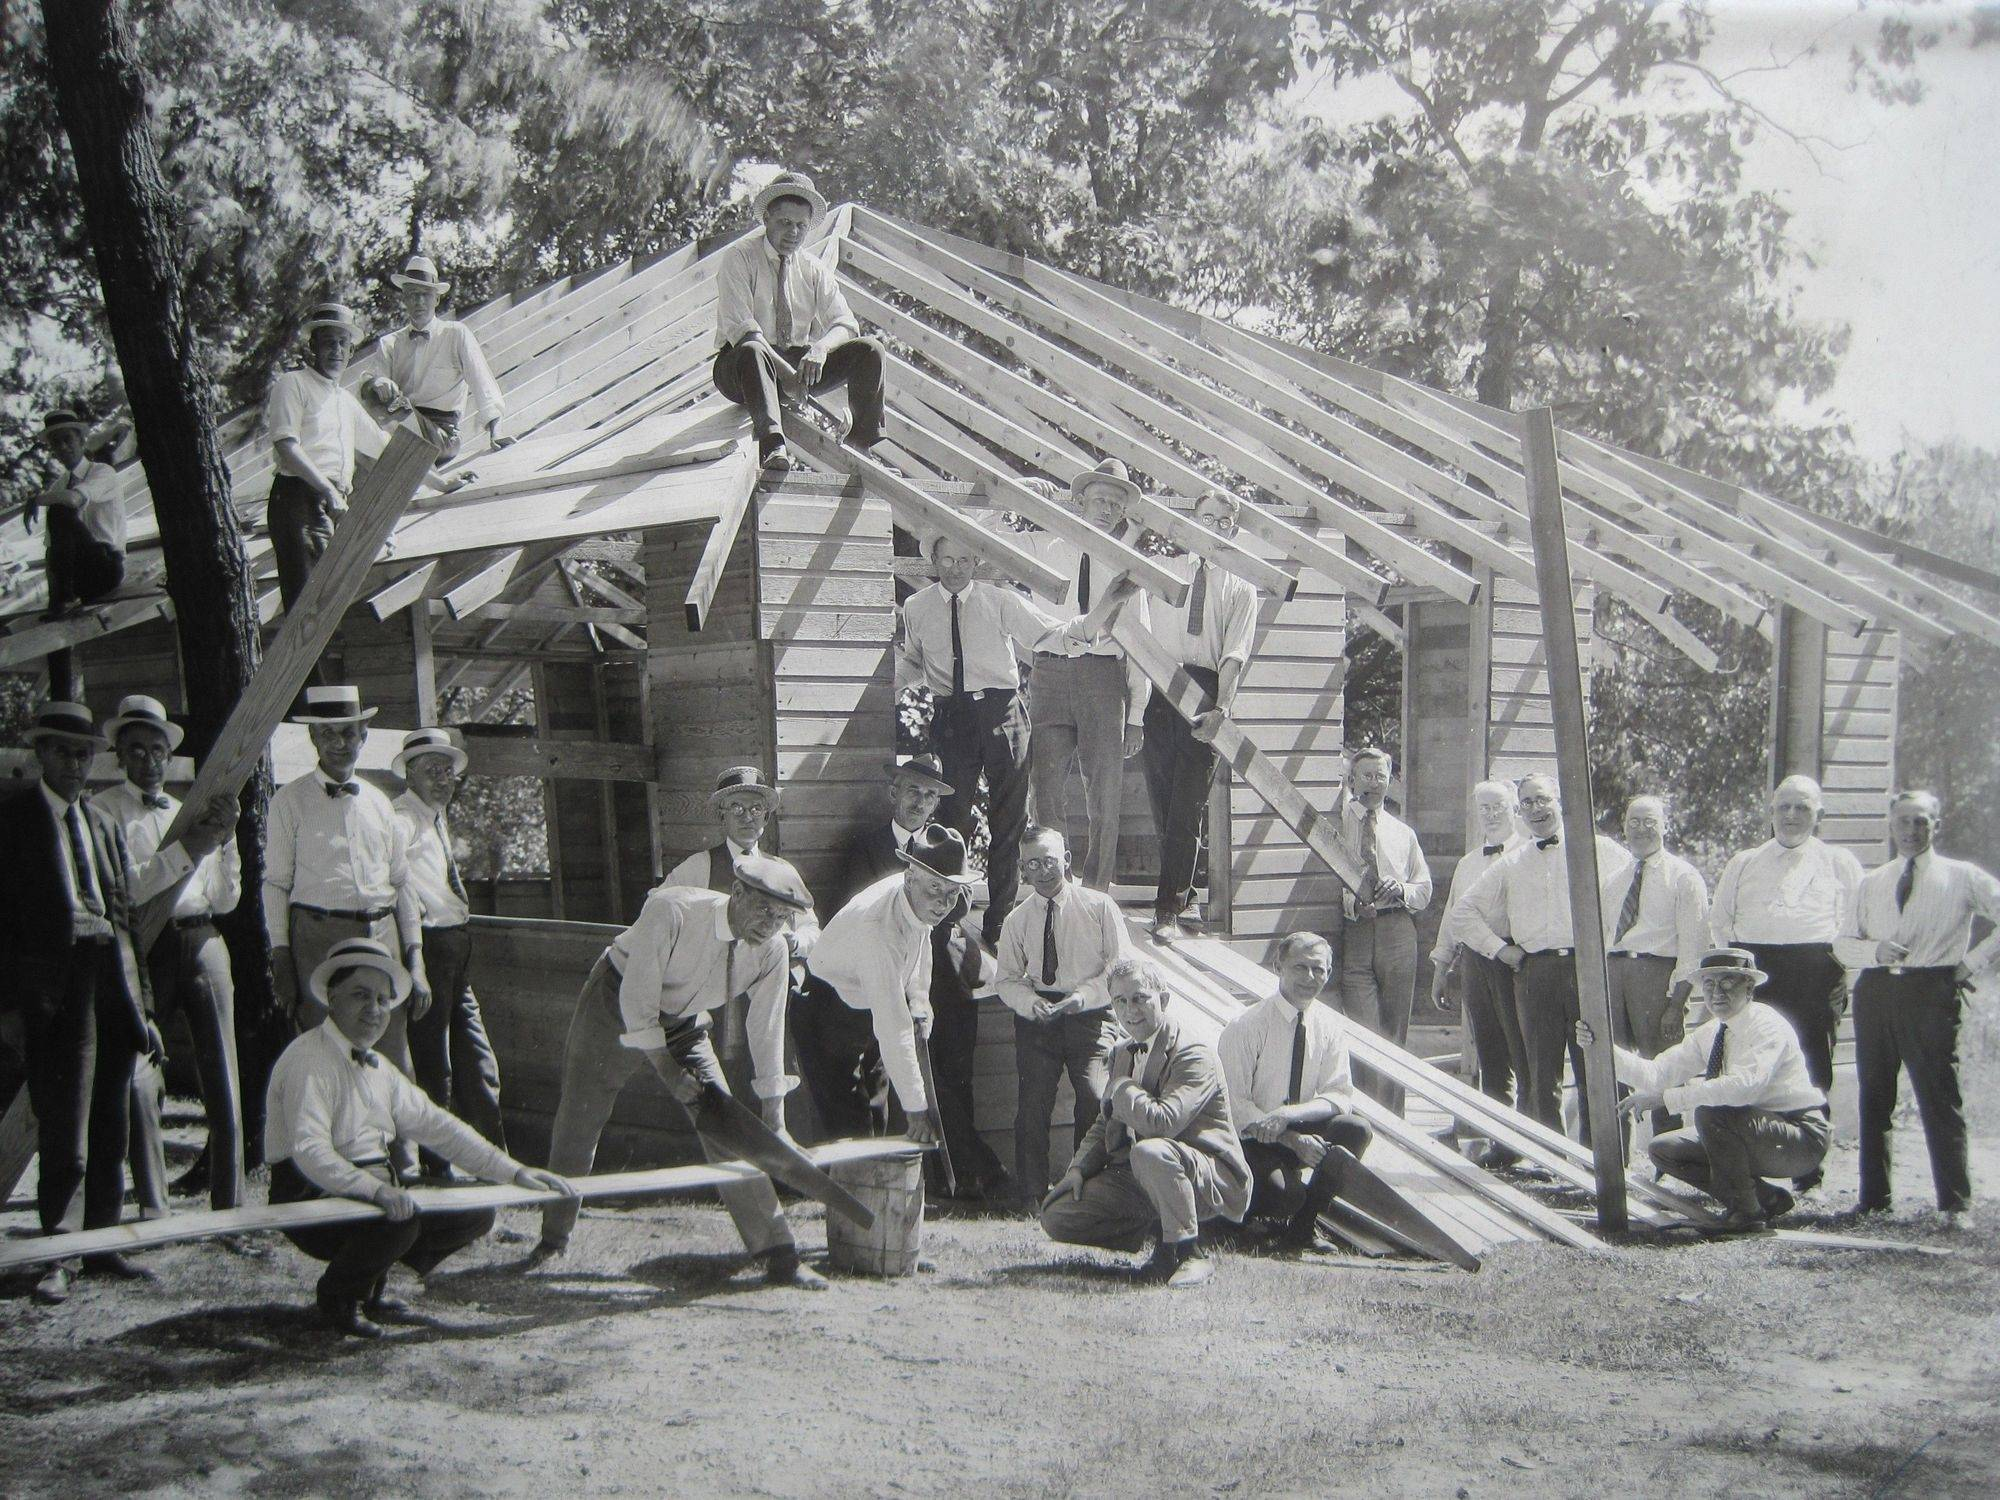 Elgin Kiwanis members help build the lodge at the Y.W.C.A.'s Camp Tu-Endie-Wei, now Brewster Creek Forest Preserve, in 1941.